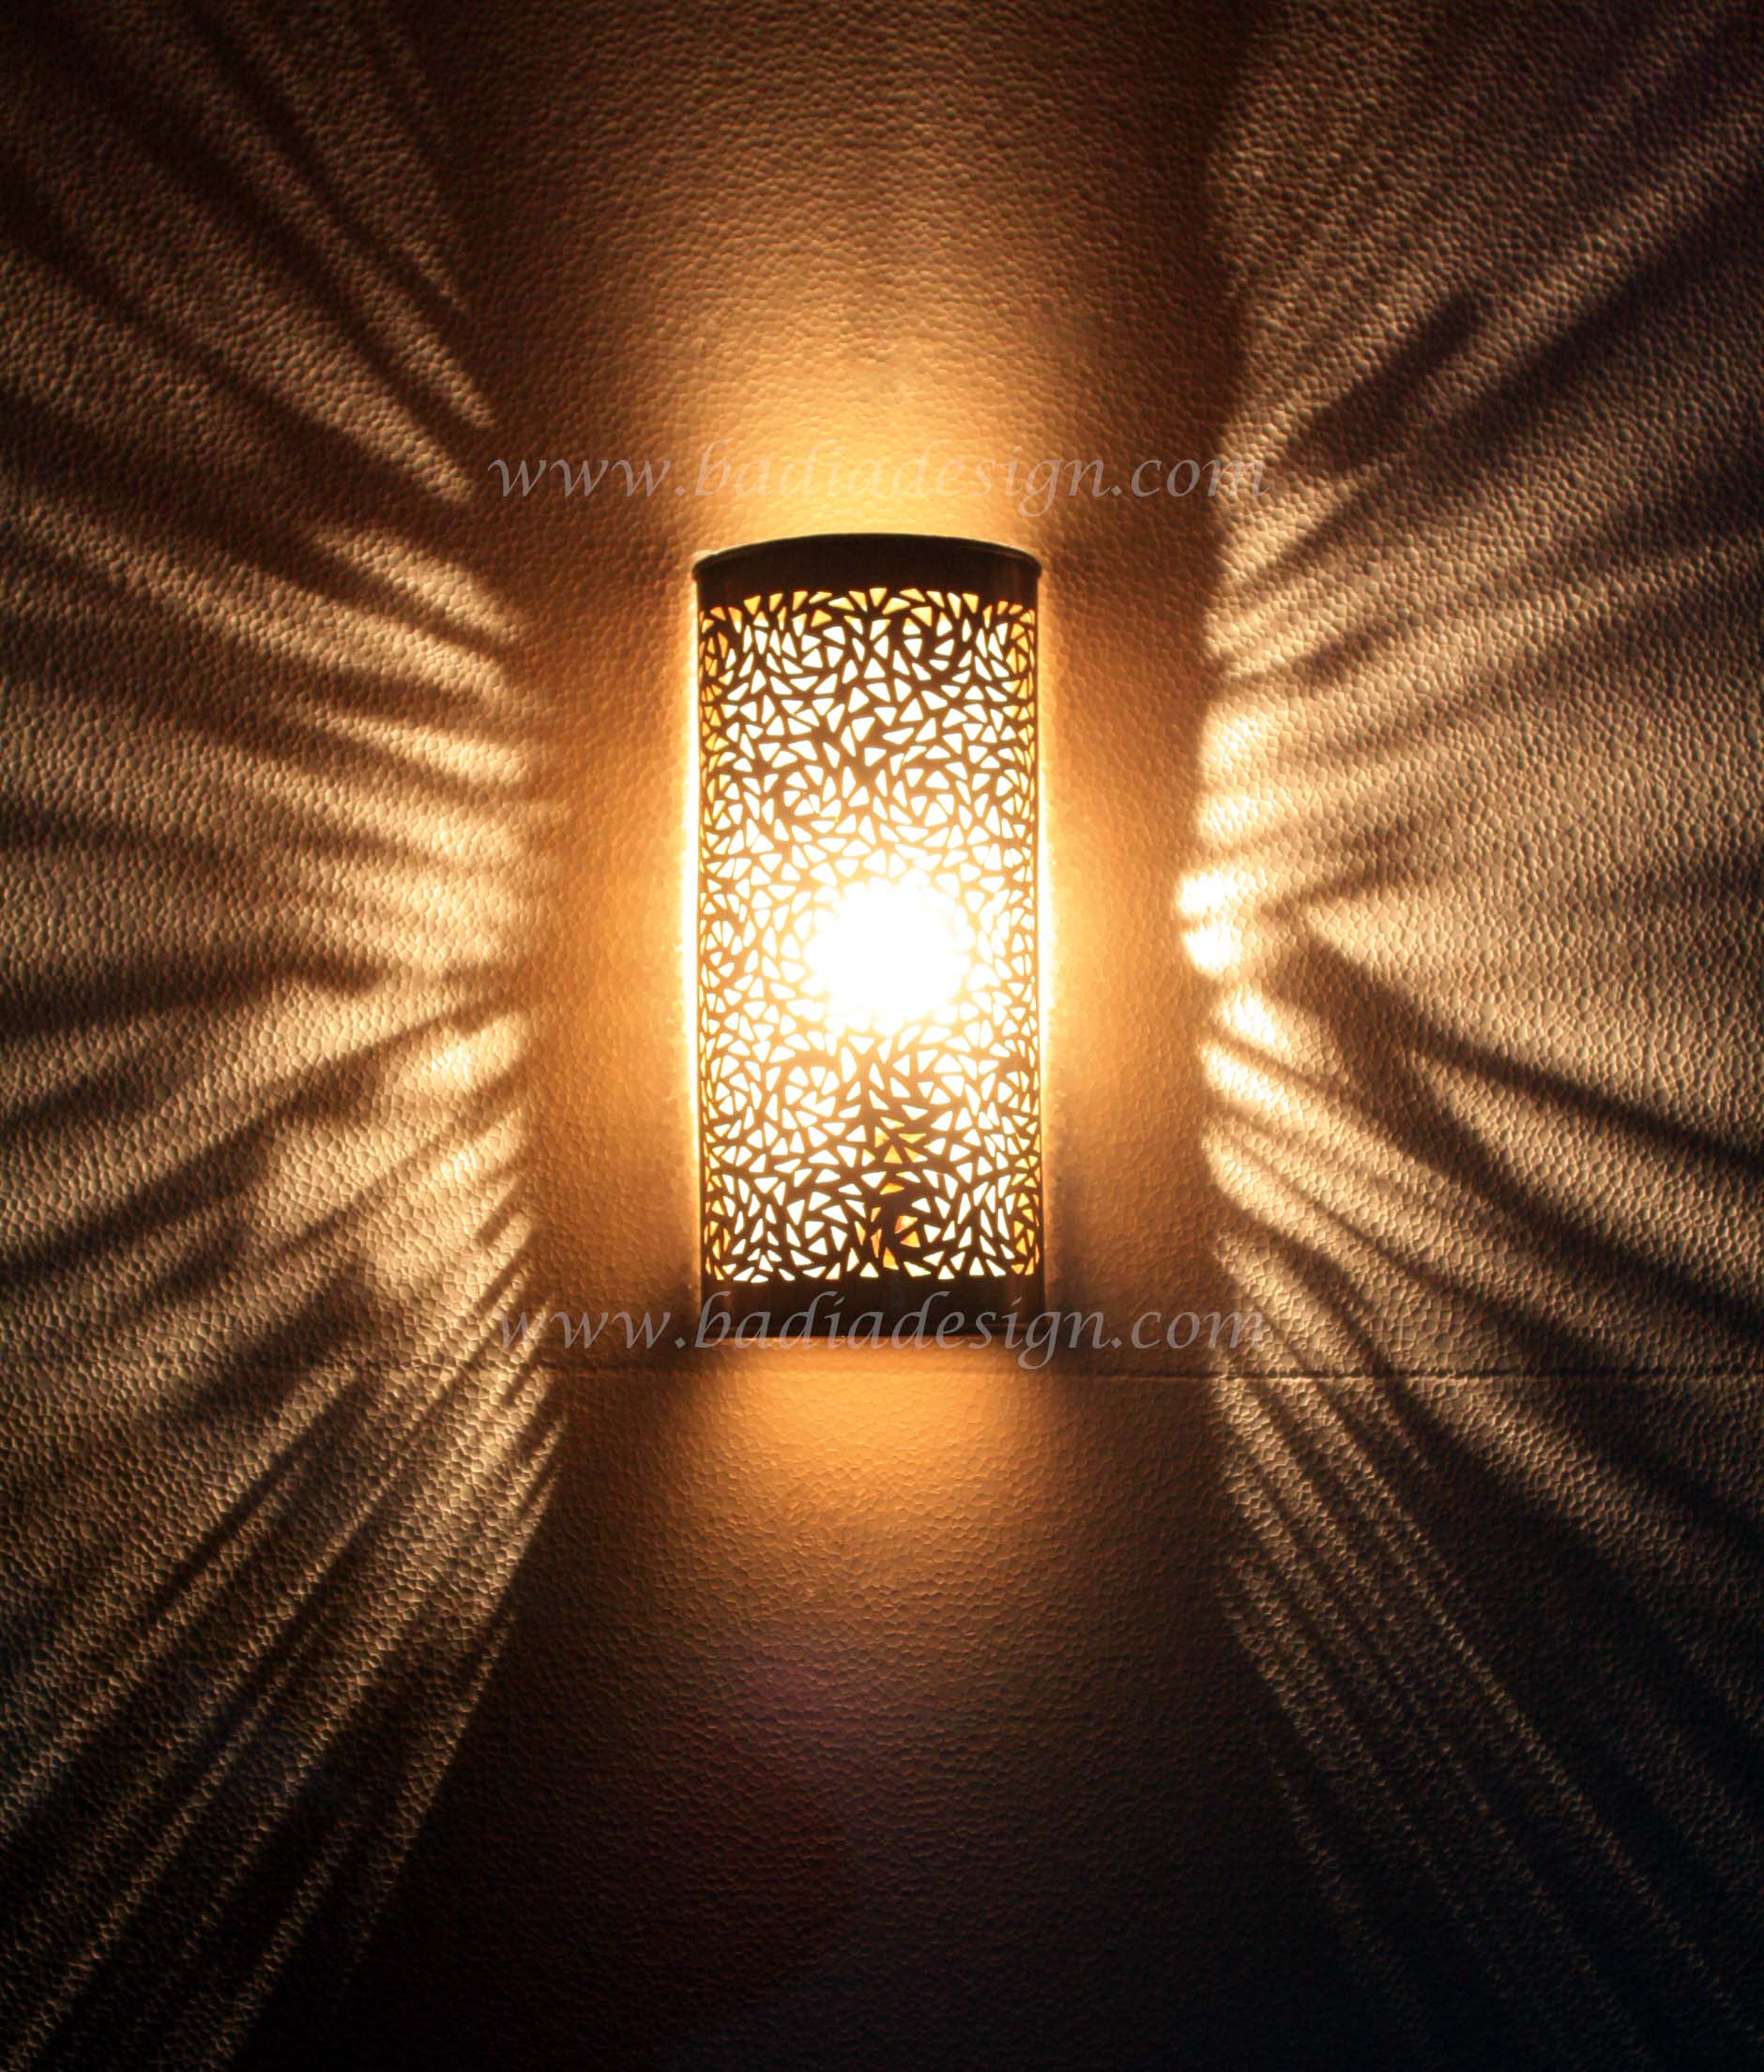 moroccan-lighting-fort-worth-texas.jpg